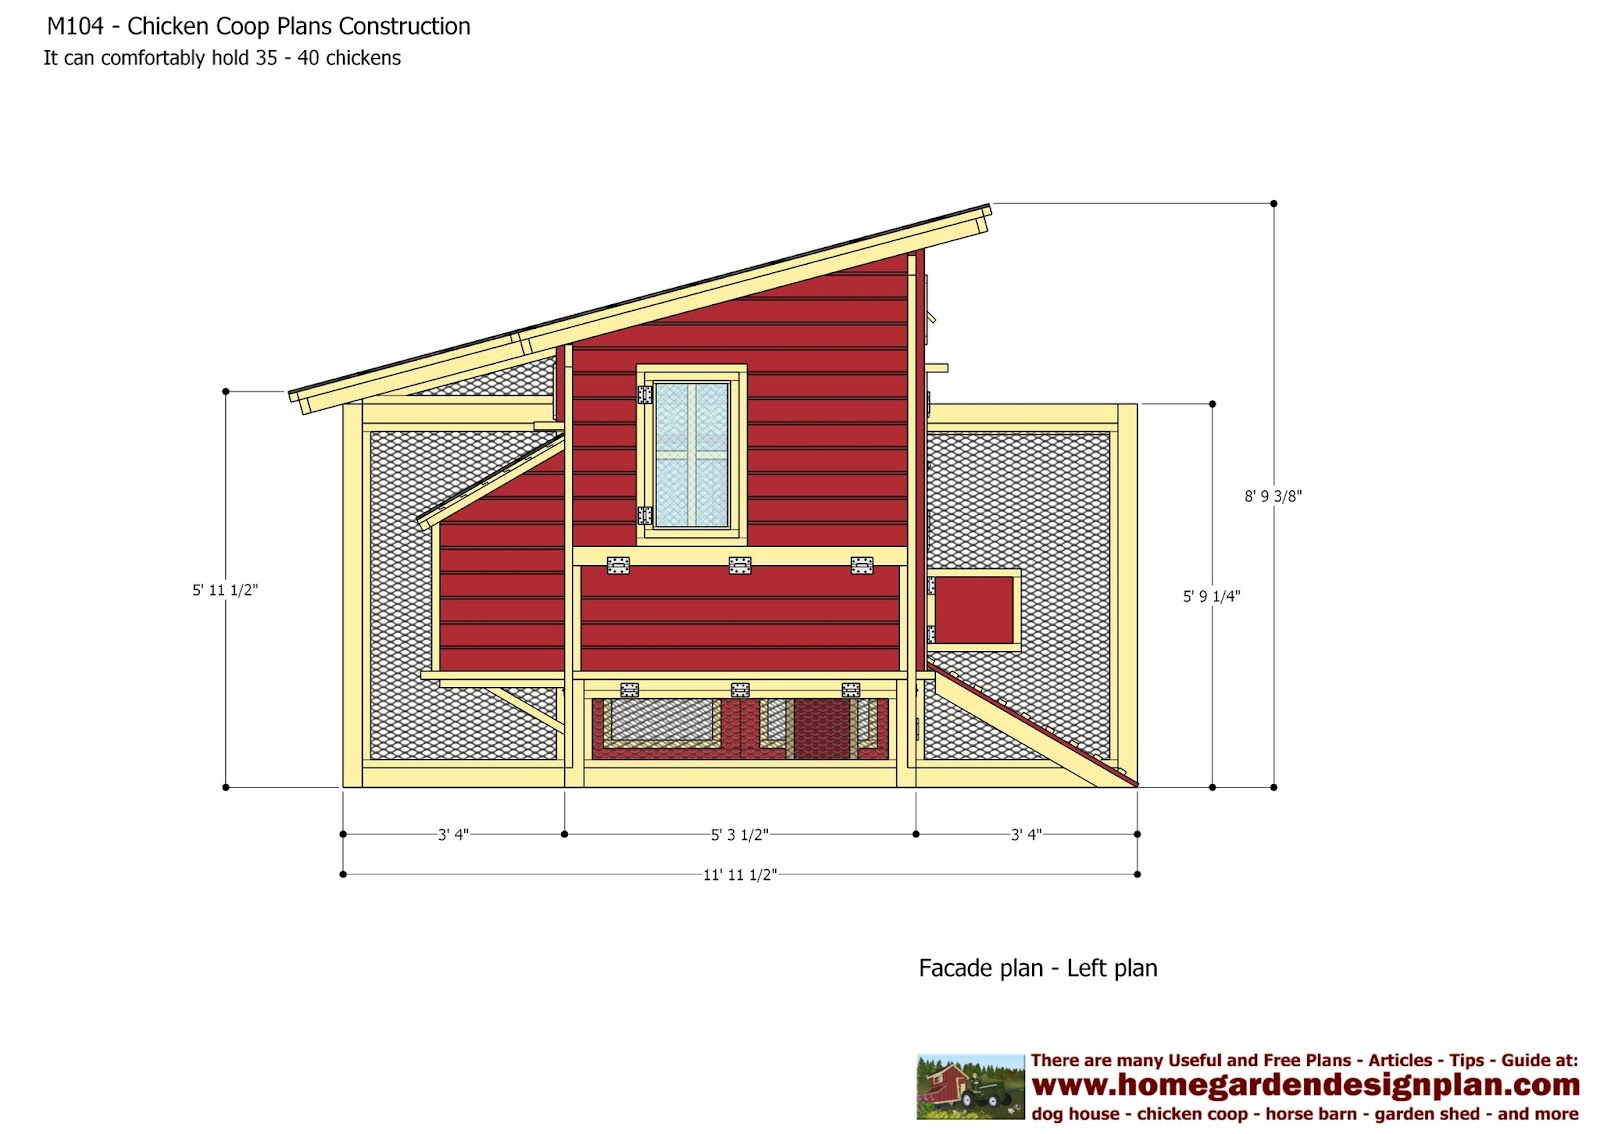 Ck Coop Guide To Get Easy Chicken Coop Plans Free